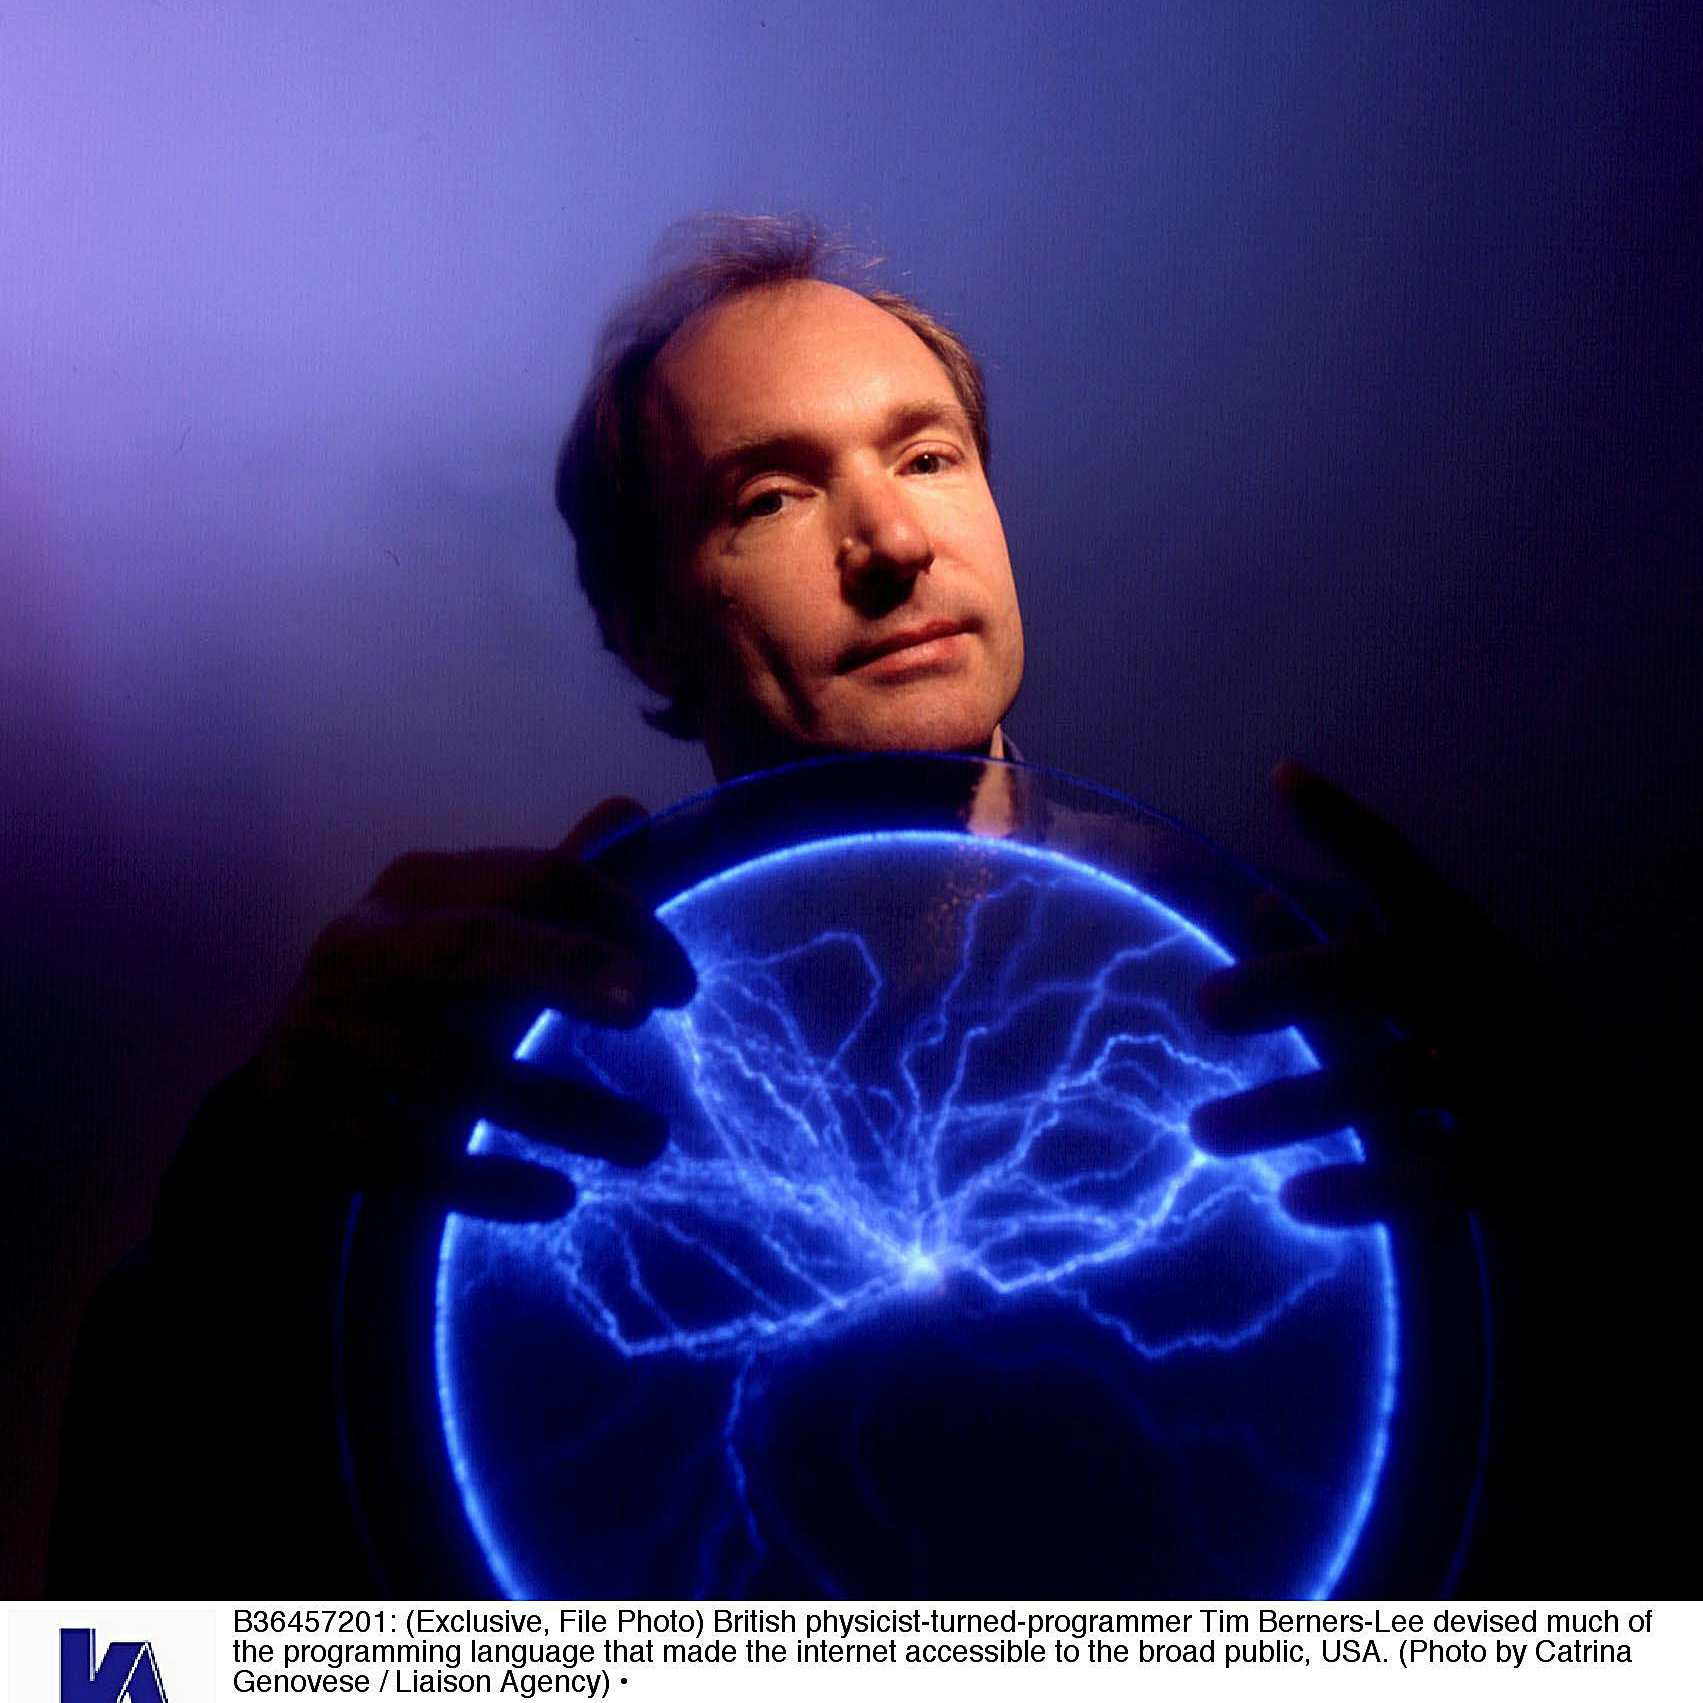 British Physicist-Turned-Programmer Tim Berners-Lee Devised Much Of The Programming Language That Made The Internet Accessible To The Public